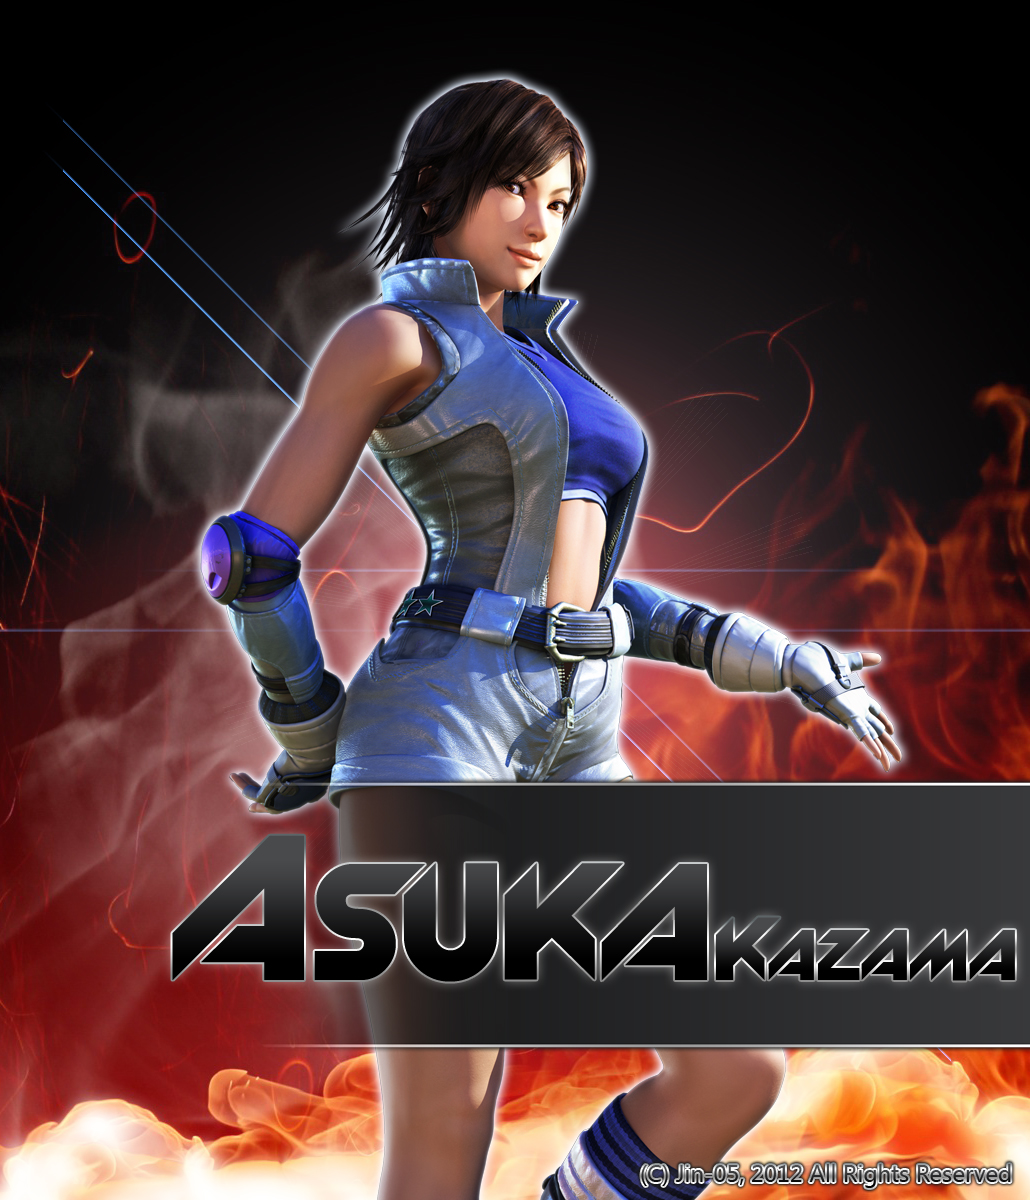 tekken jin and asuka relationship help